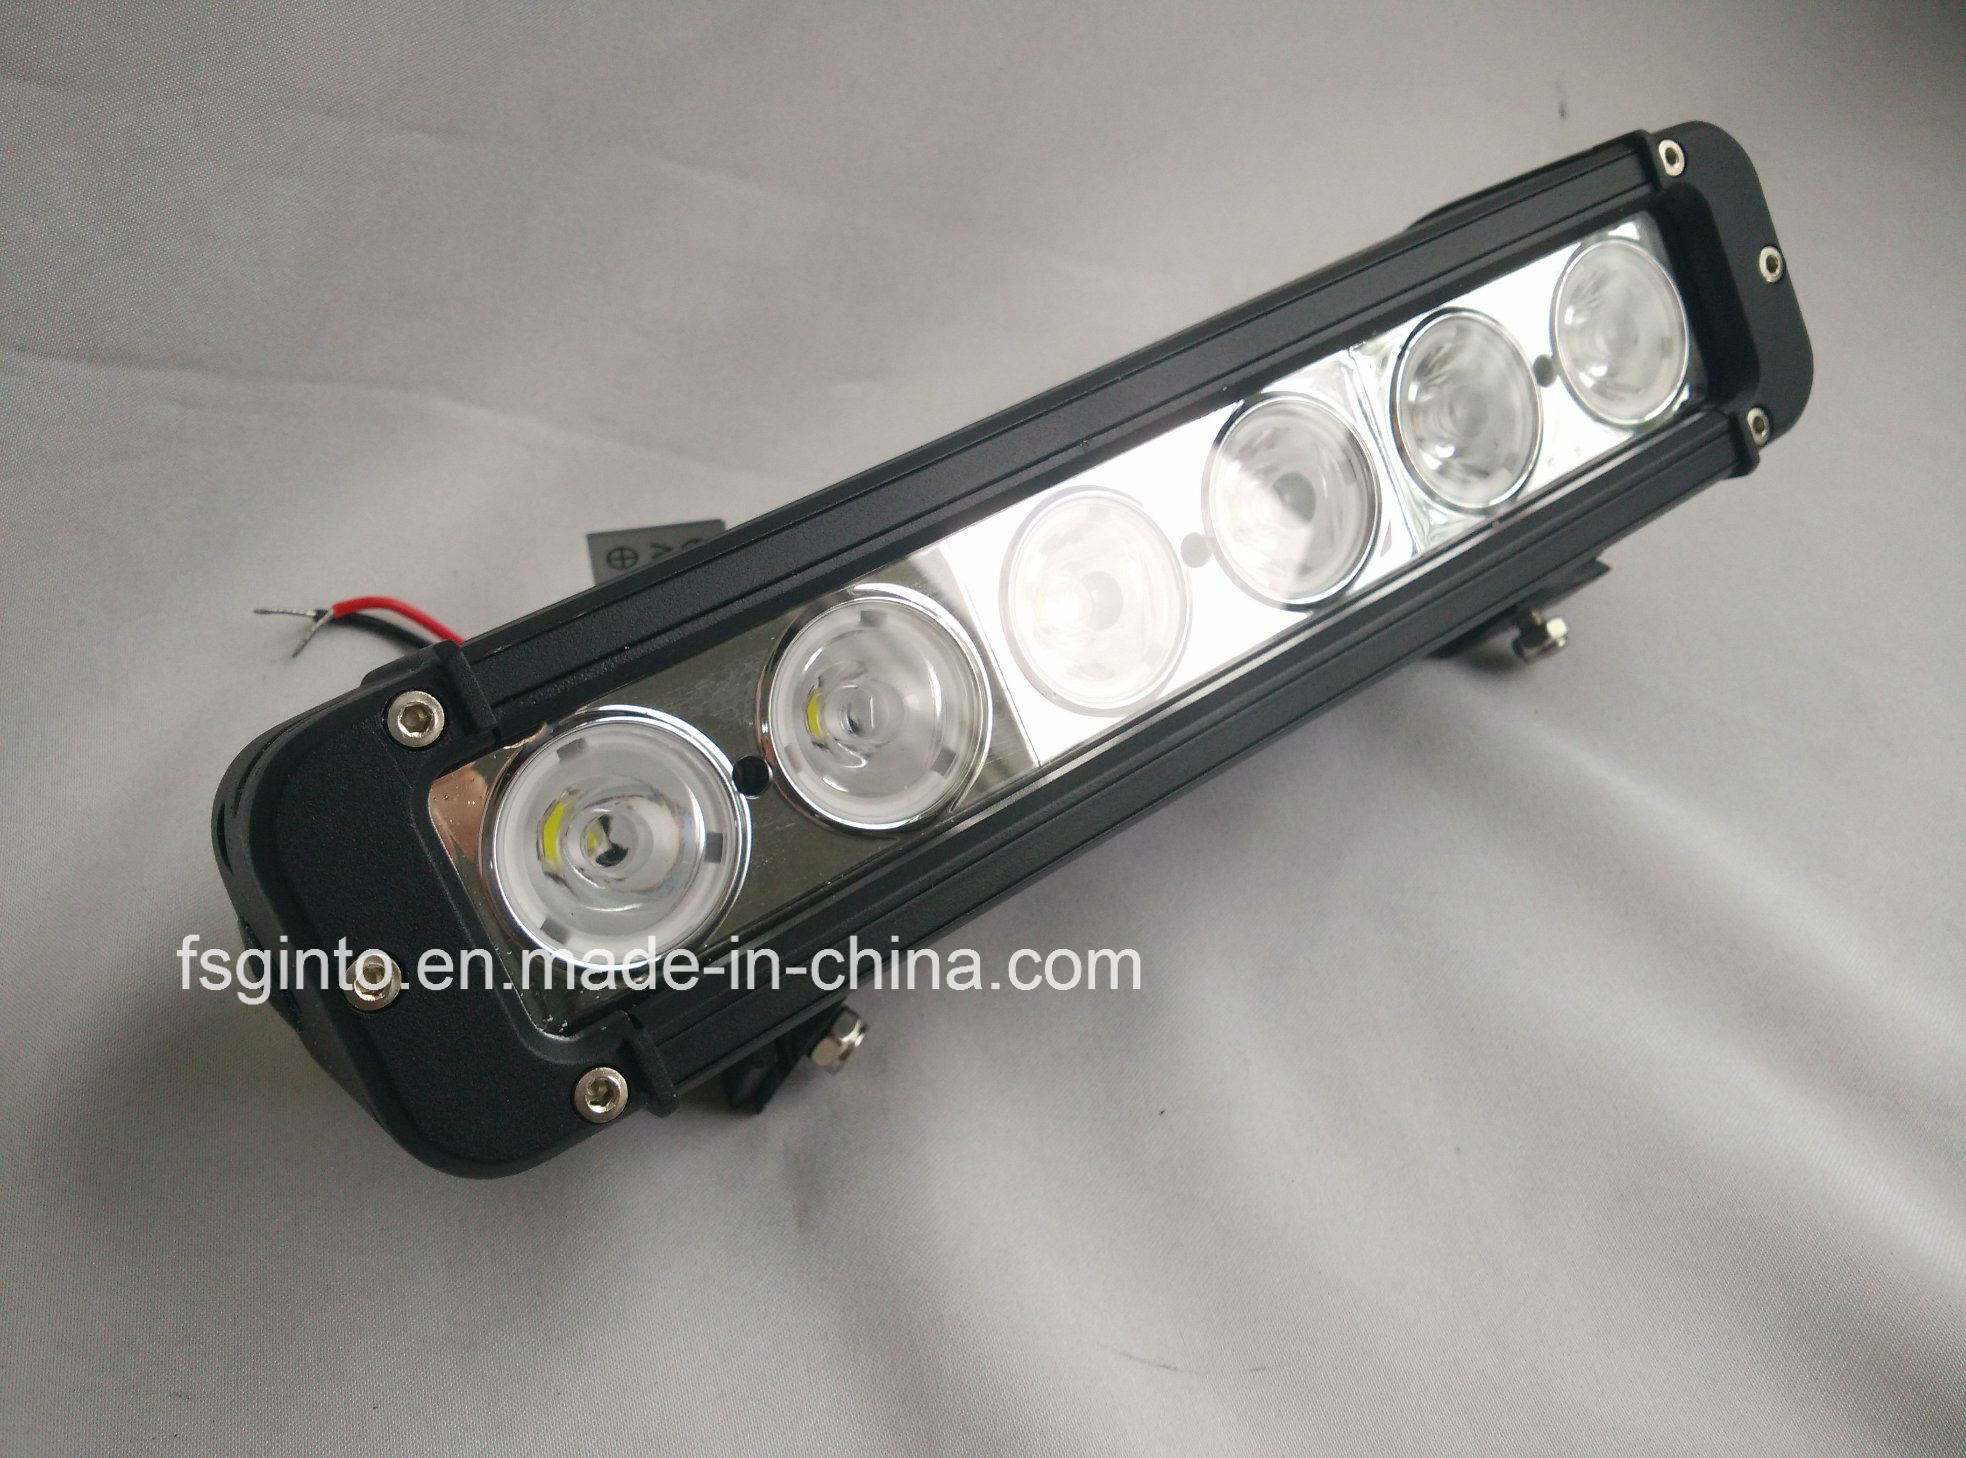 60W 11inch Single Row CREE LED Light Bar for 4X4 off-Road Vehicles (GT3301-60W) pictures & photos